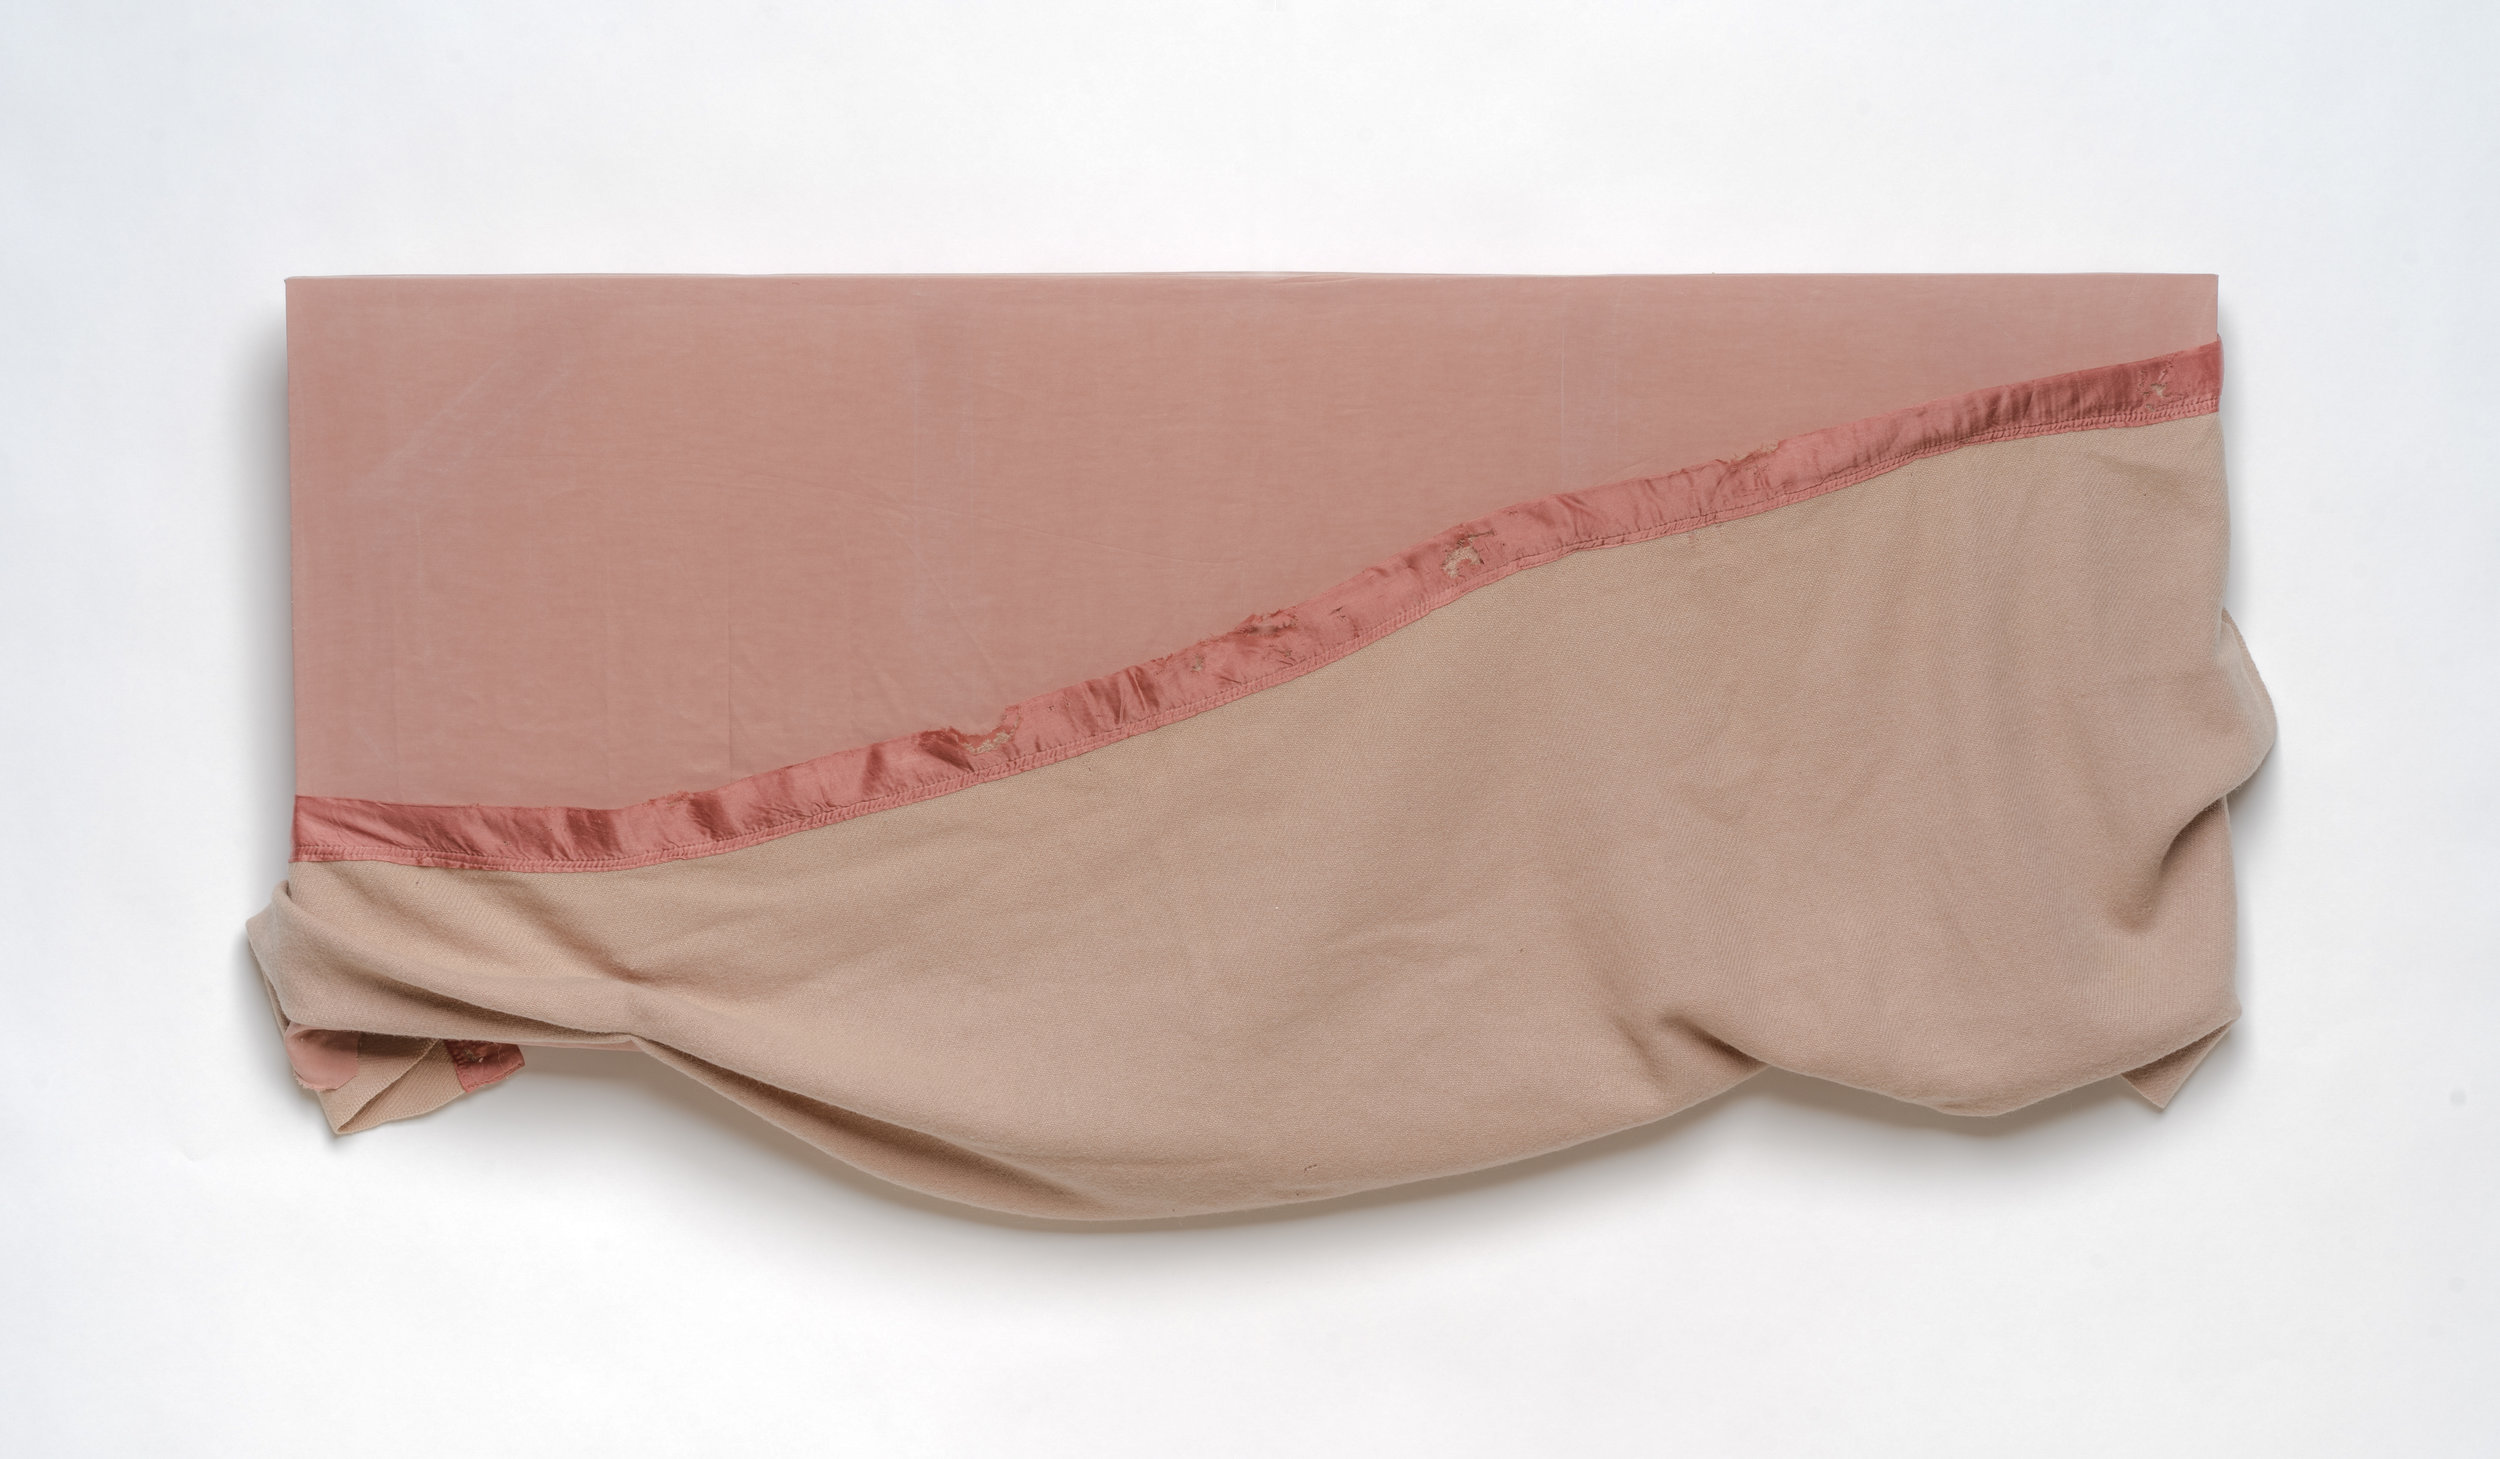 Cover-up   2019 Inherited blanket and sheet over stretcher bars 25 in. x 52 in.